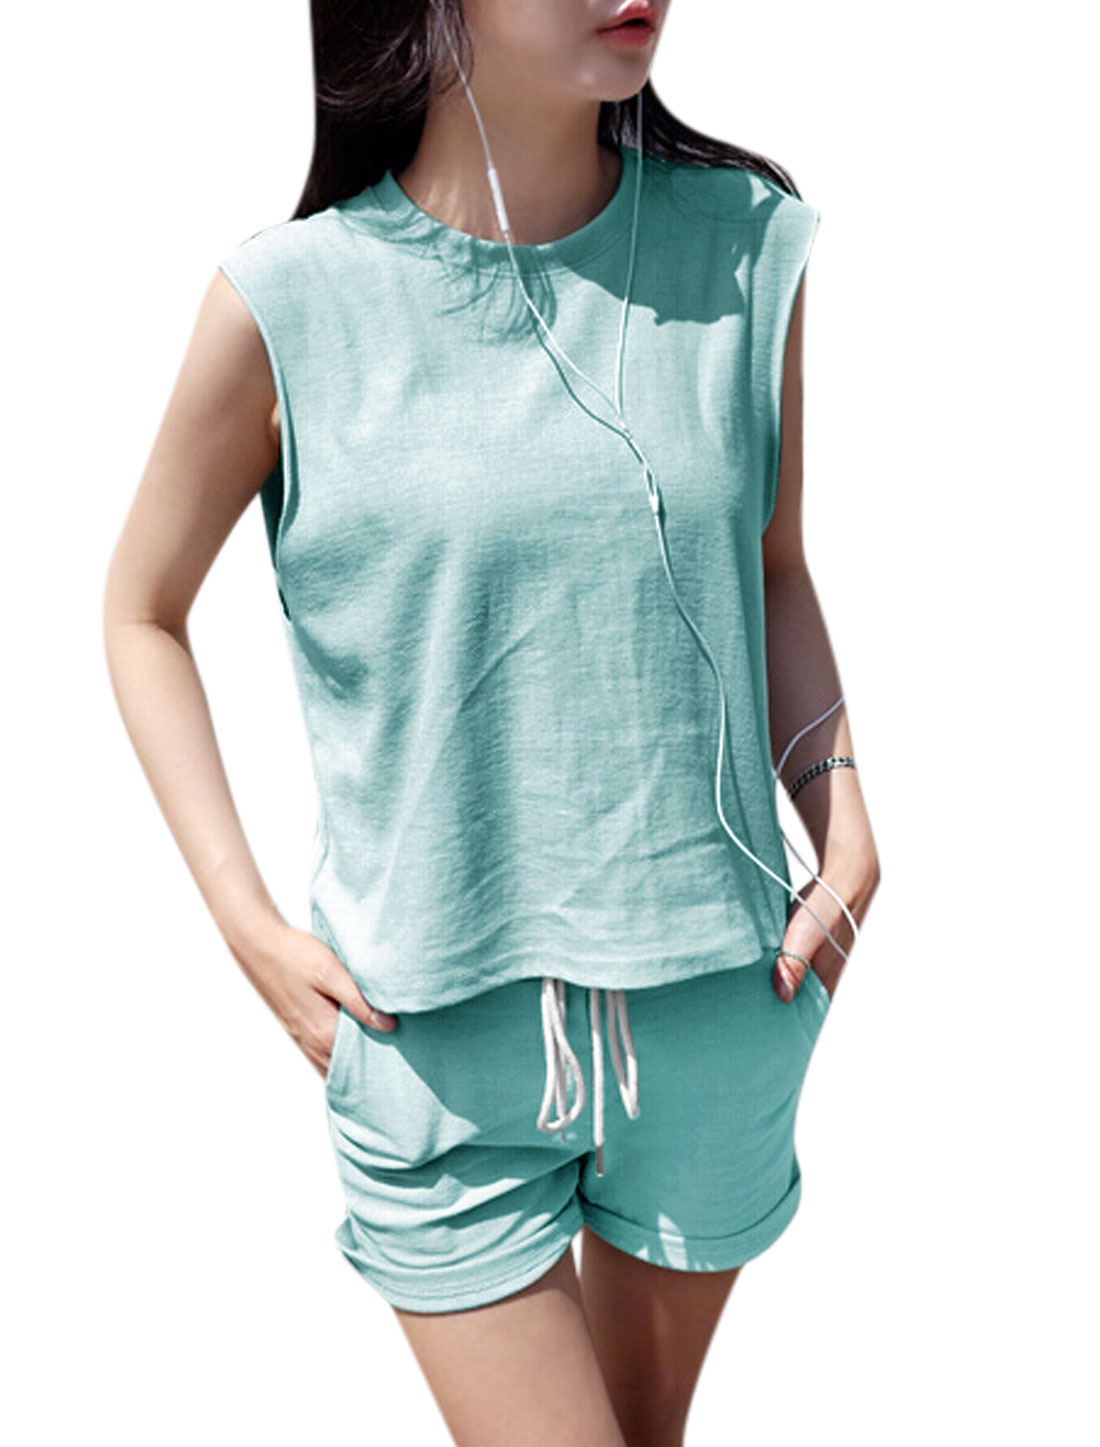 Woman Sleeveless Round Neck Tee w Drawstring Waist Shorts Sets Light Blue S